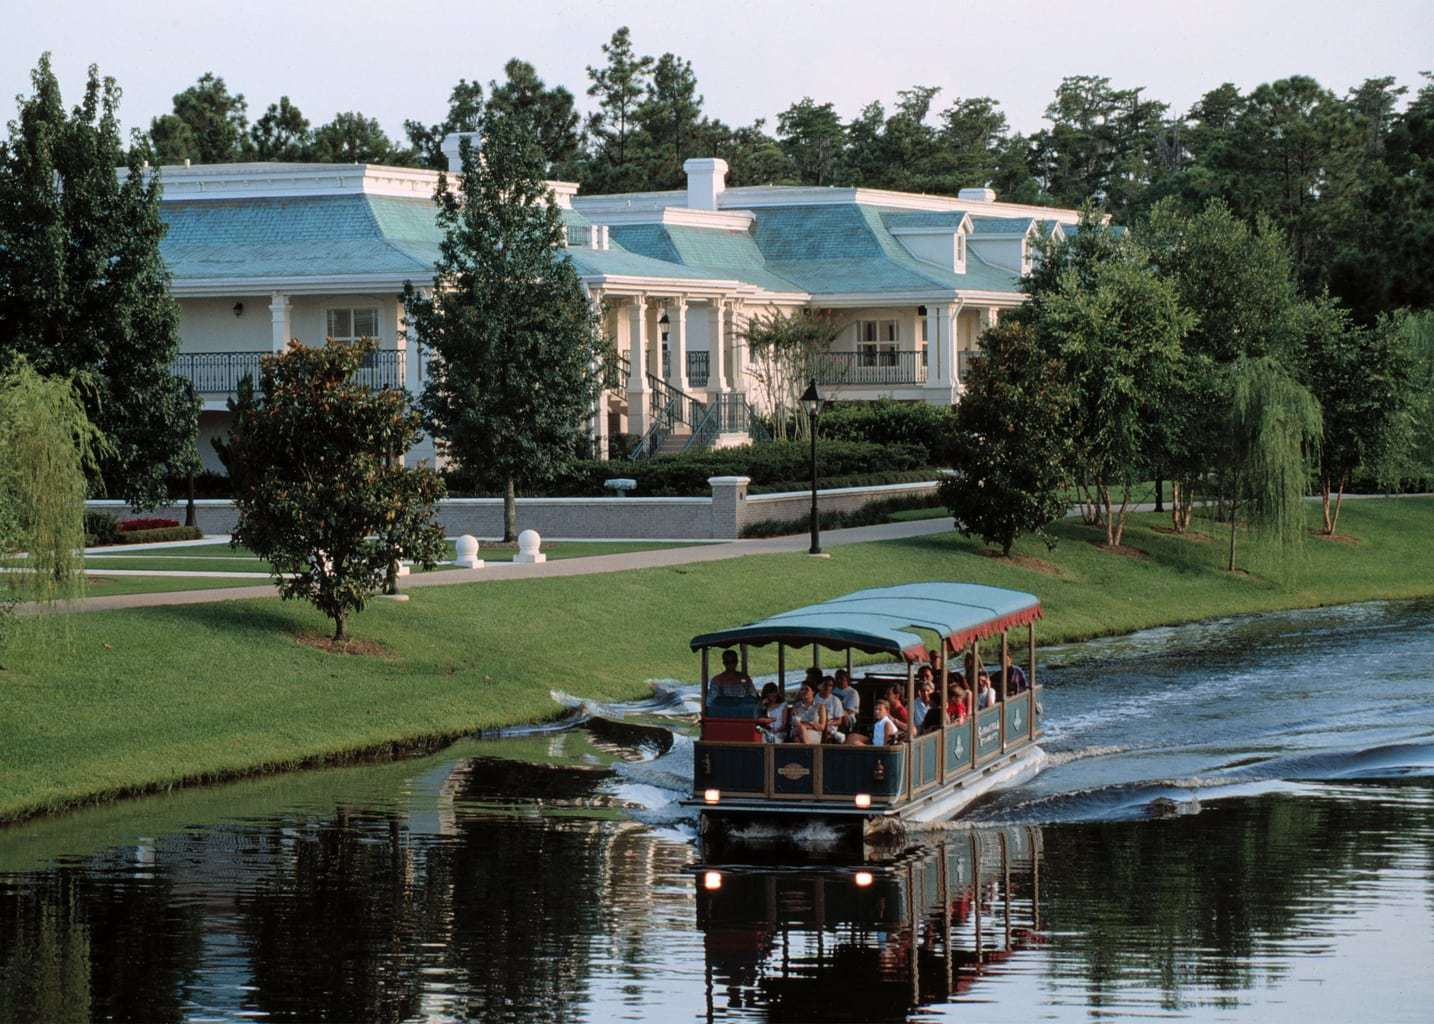 """Most recently, I had the pleasure of staying at Disney's Port Orleans Resort. A """"Moderate"""" resort, in between Value and Deluxe, according to the Disney website."""